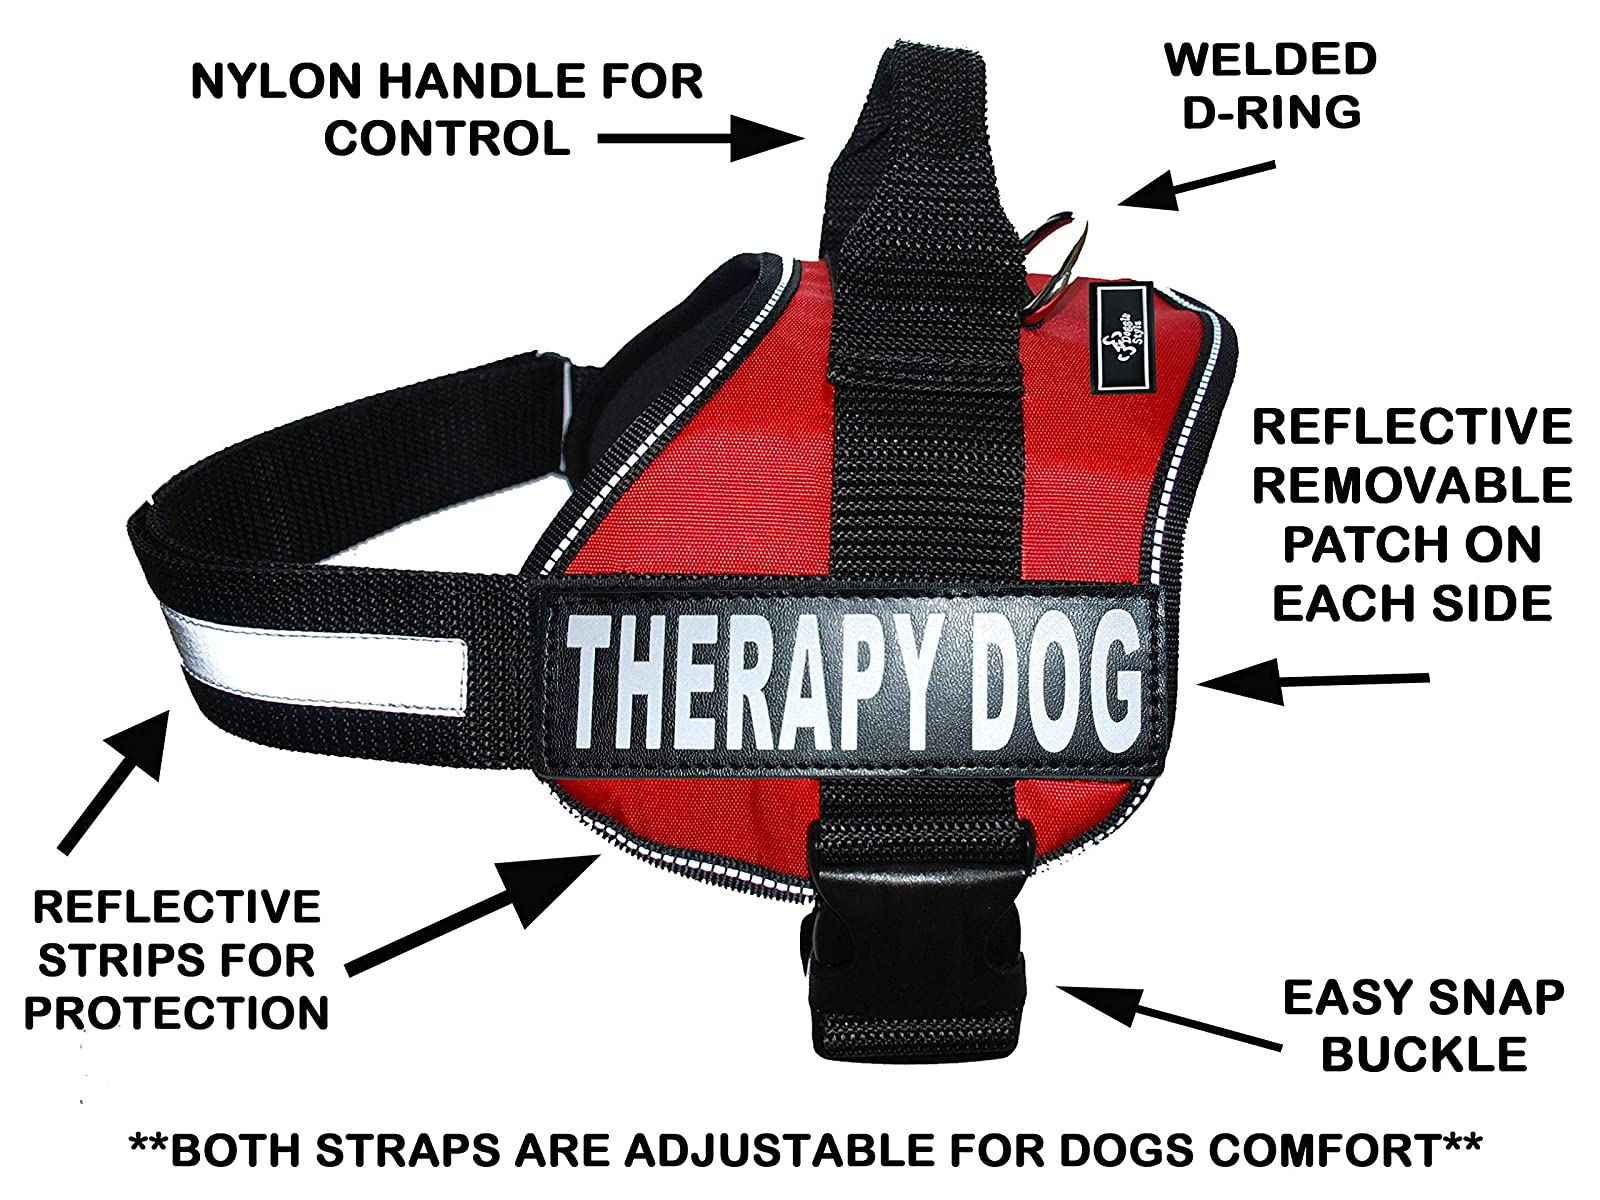 Therapy Dog Harness Service Working Vest Jacket - 1